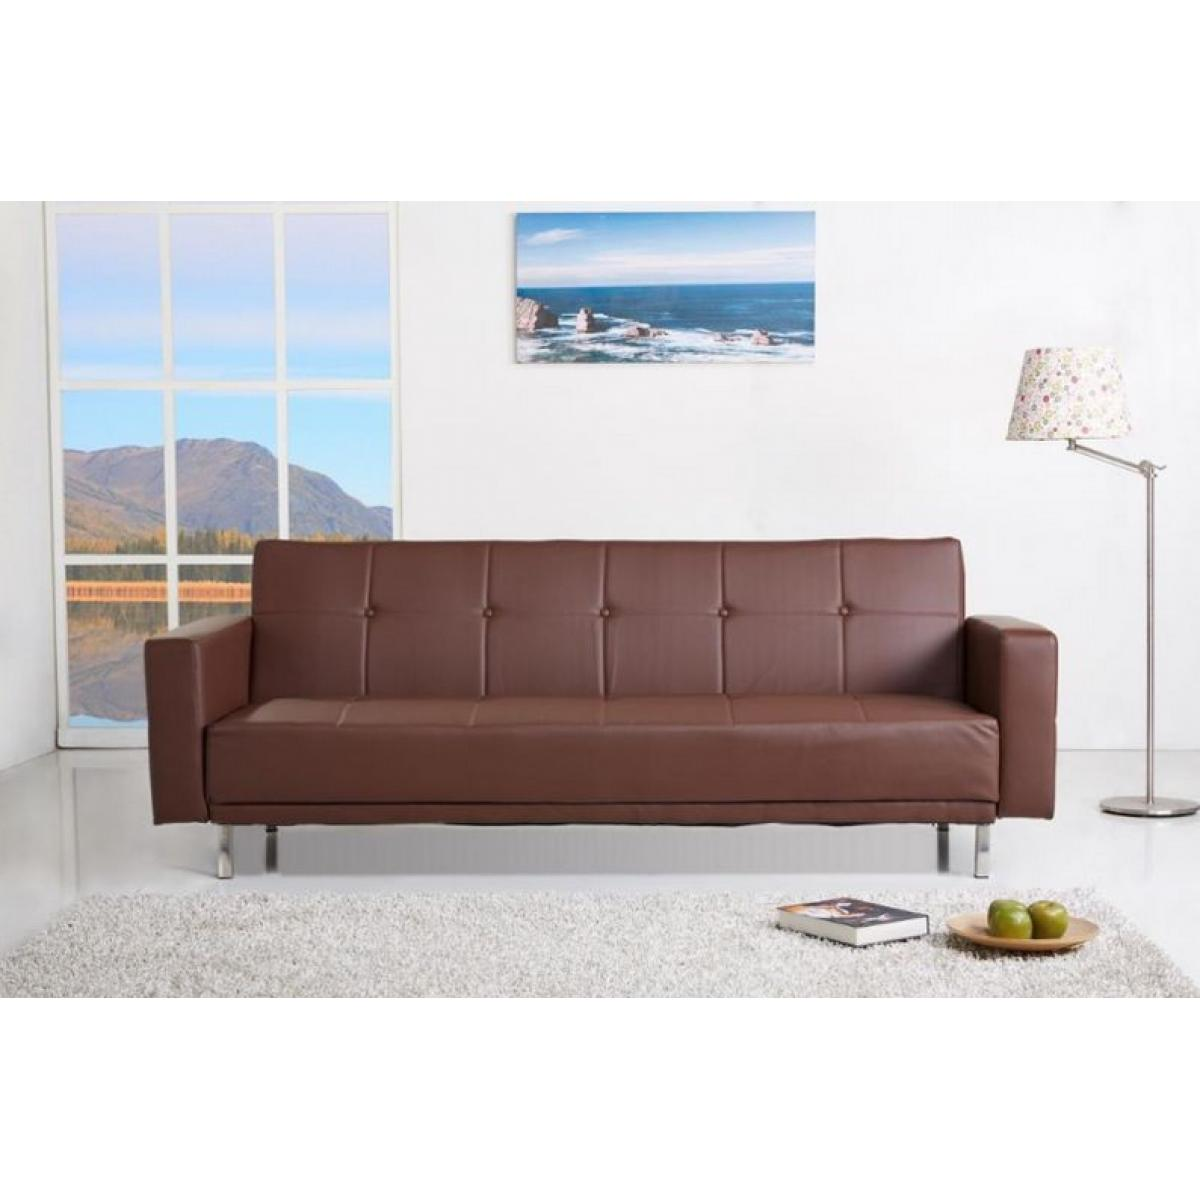 schlafcouch 217x88 schlafsofa couch sofa schlaffunktion kunstleder braun ebay. Black Bedroom Furniture Sets. Home Design Ideas